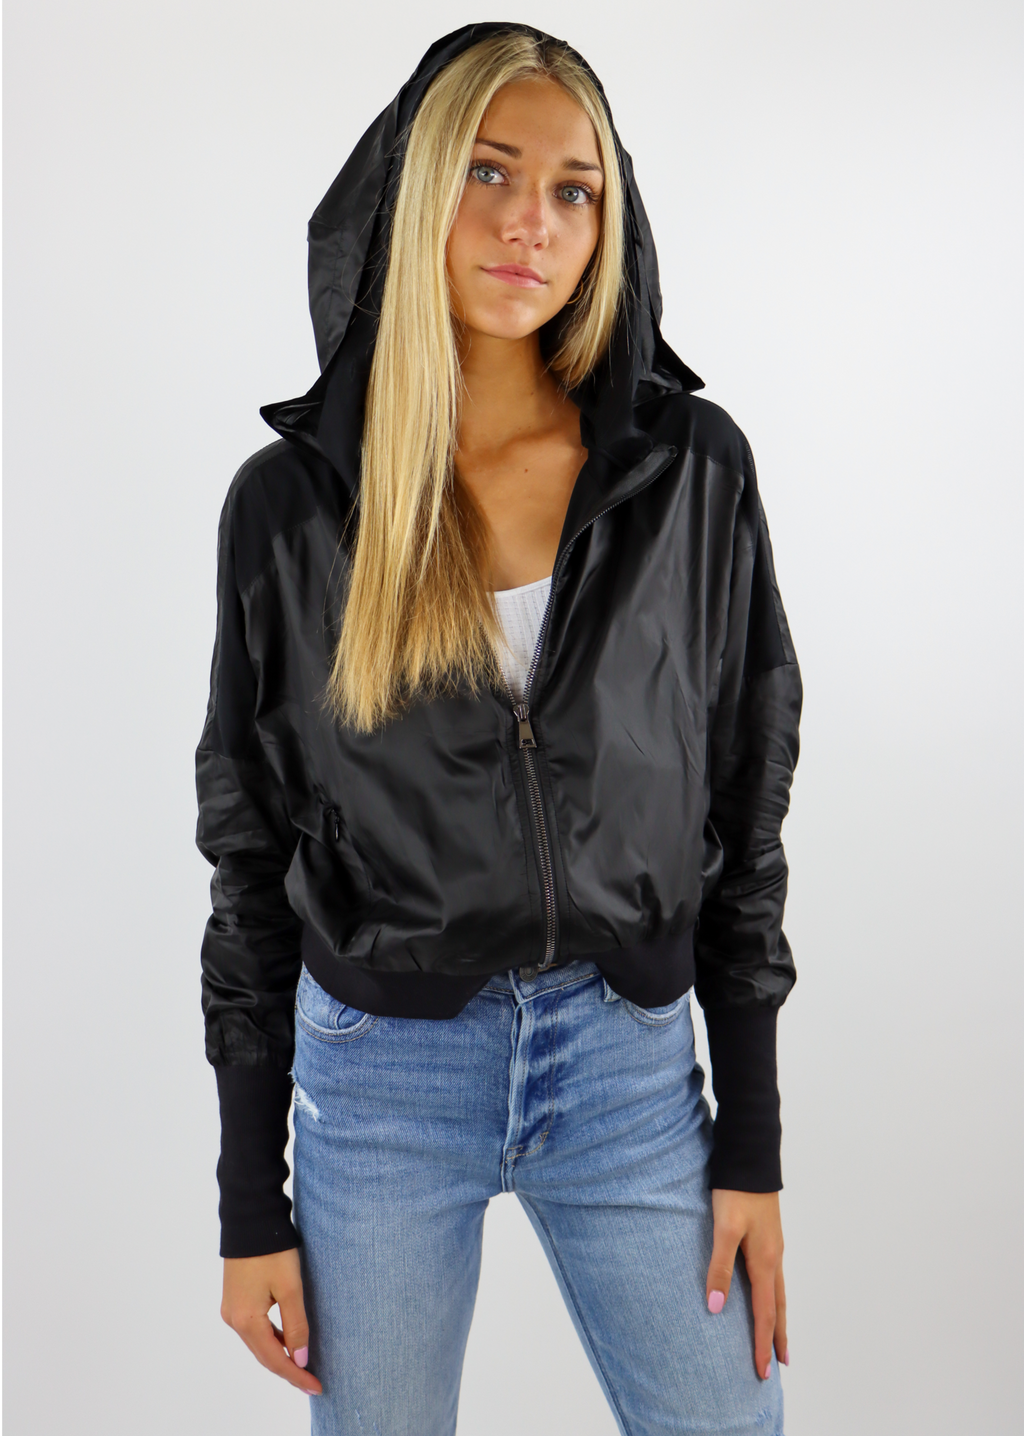 Mood Swings Windbreaker ★ Black